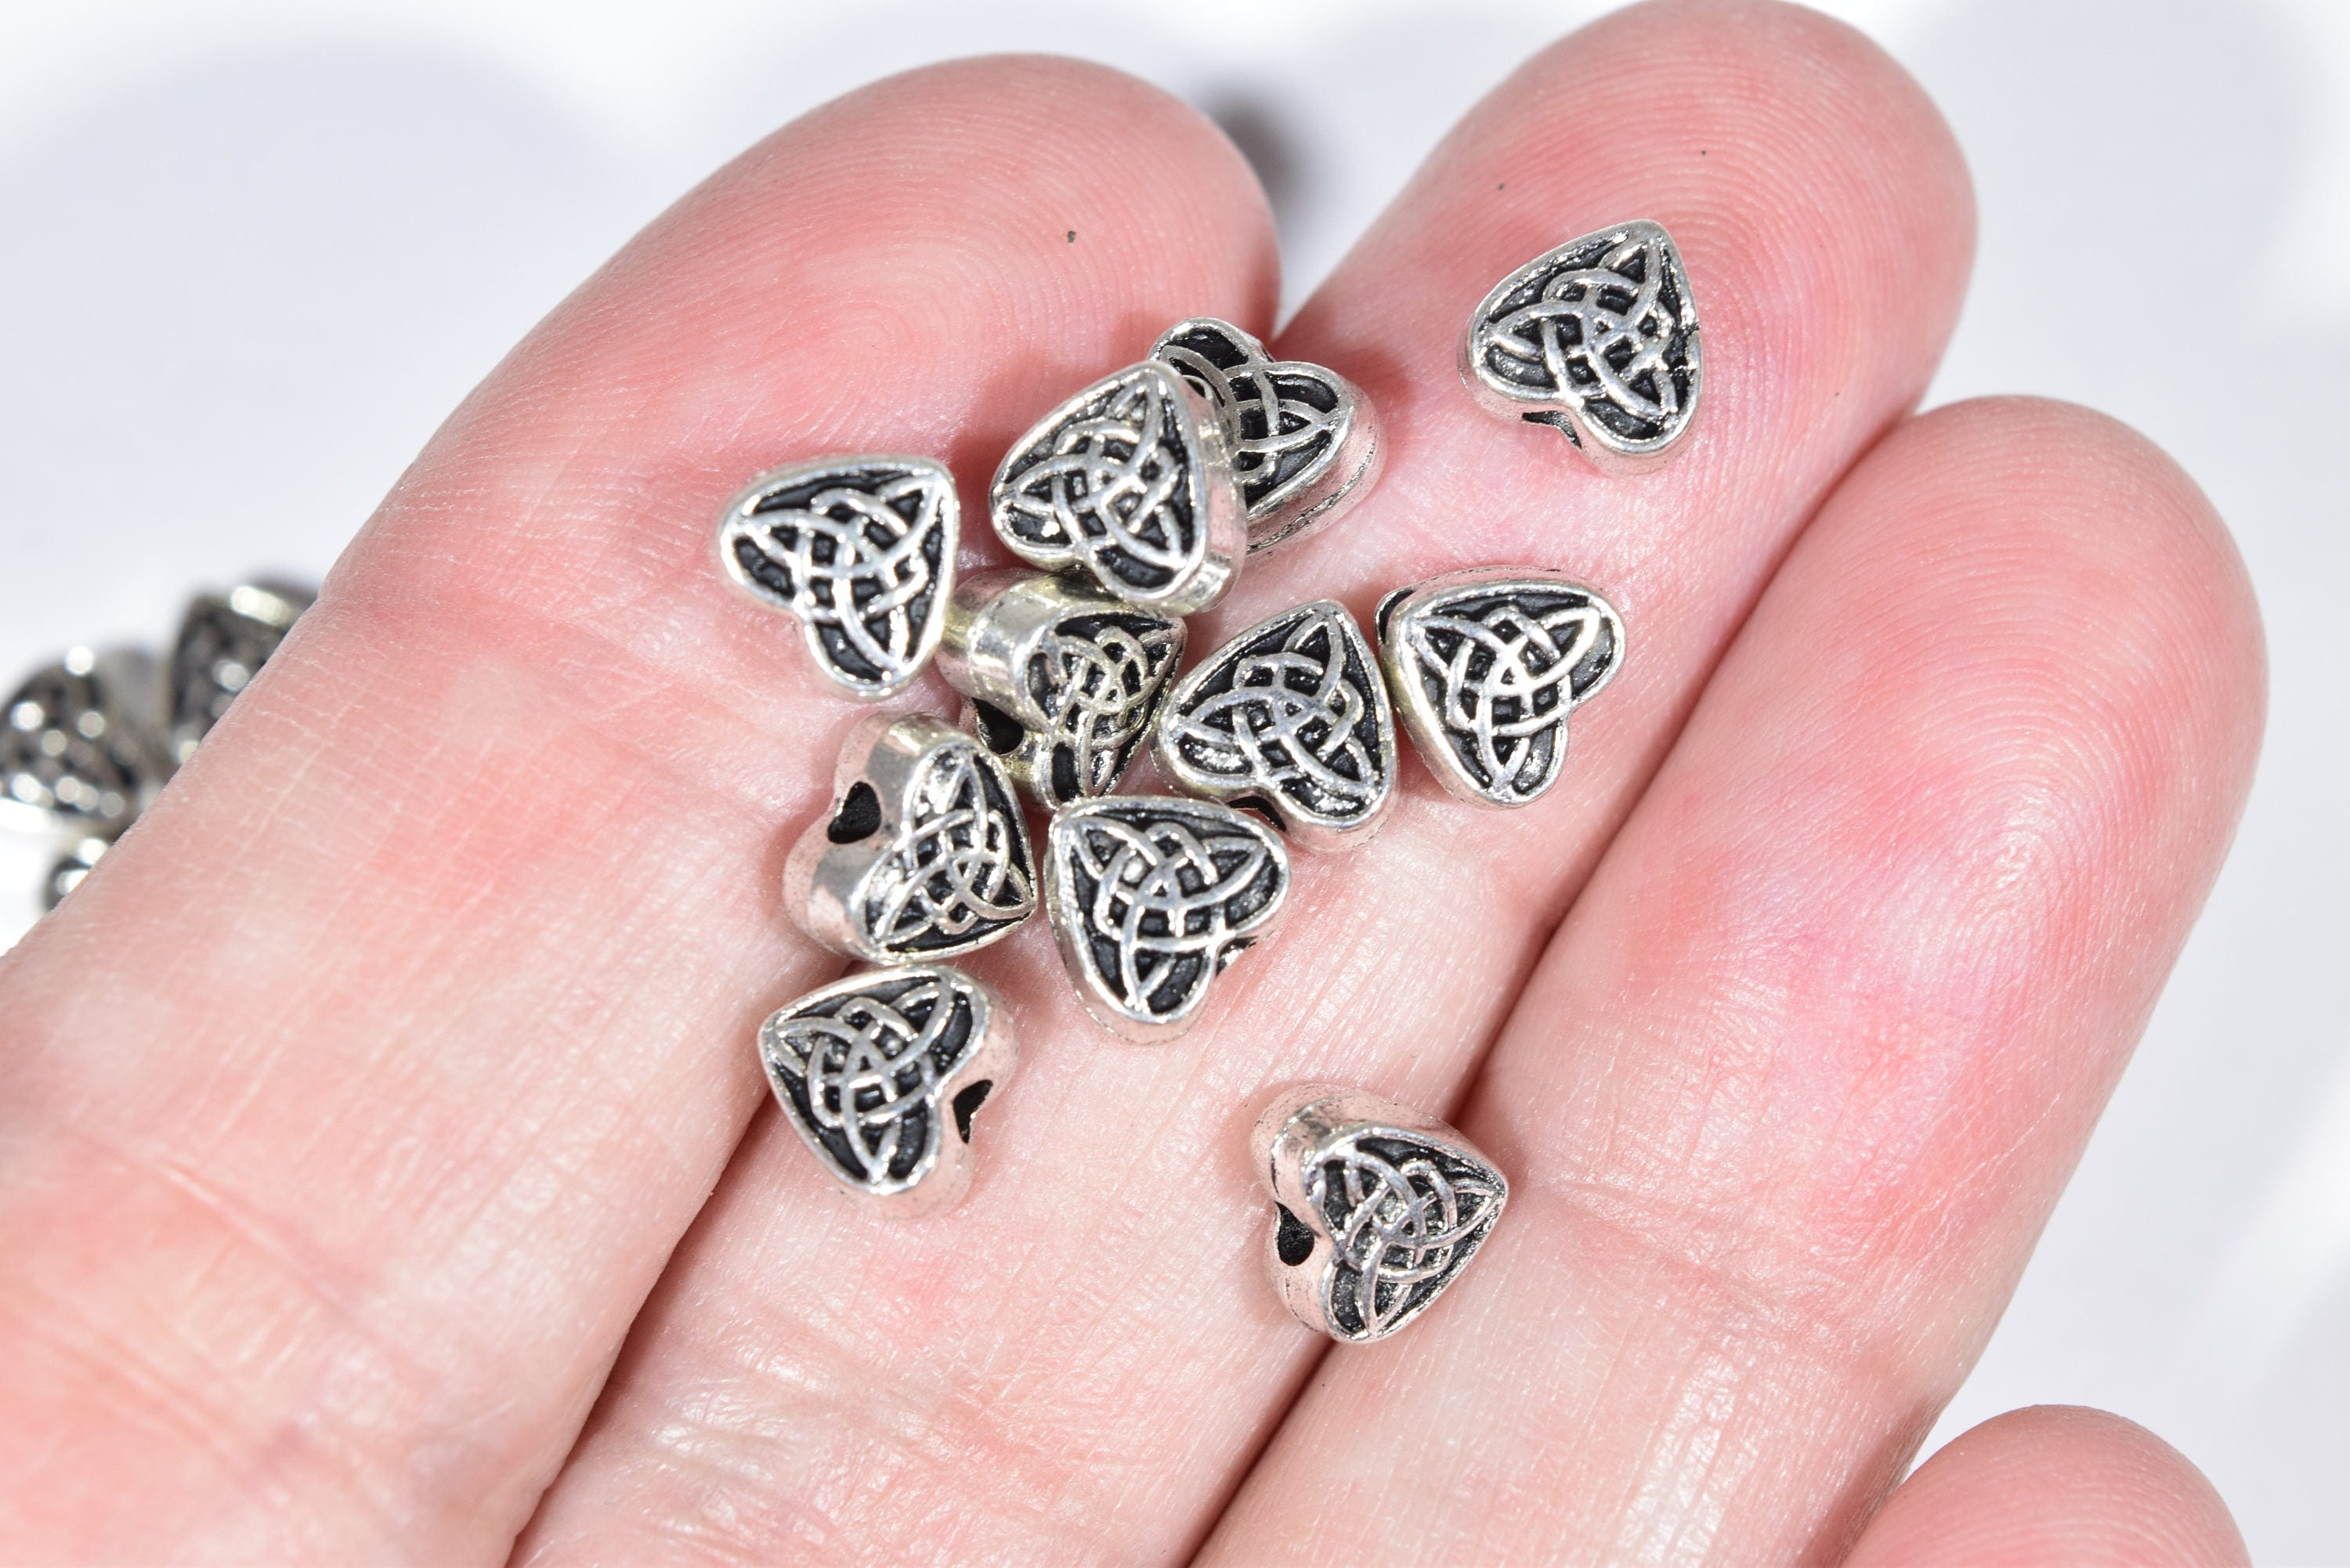 16 Spacer Beads 5 mm Celtic Knot Beads Celtic Beads 5 mm